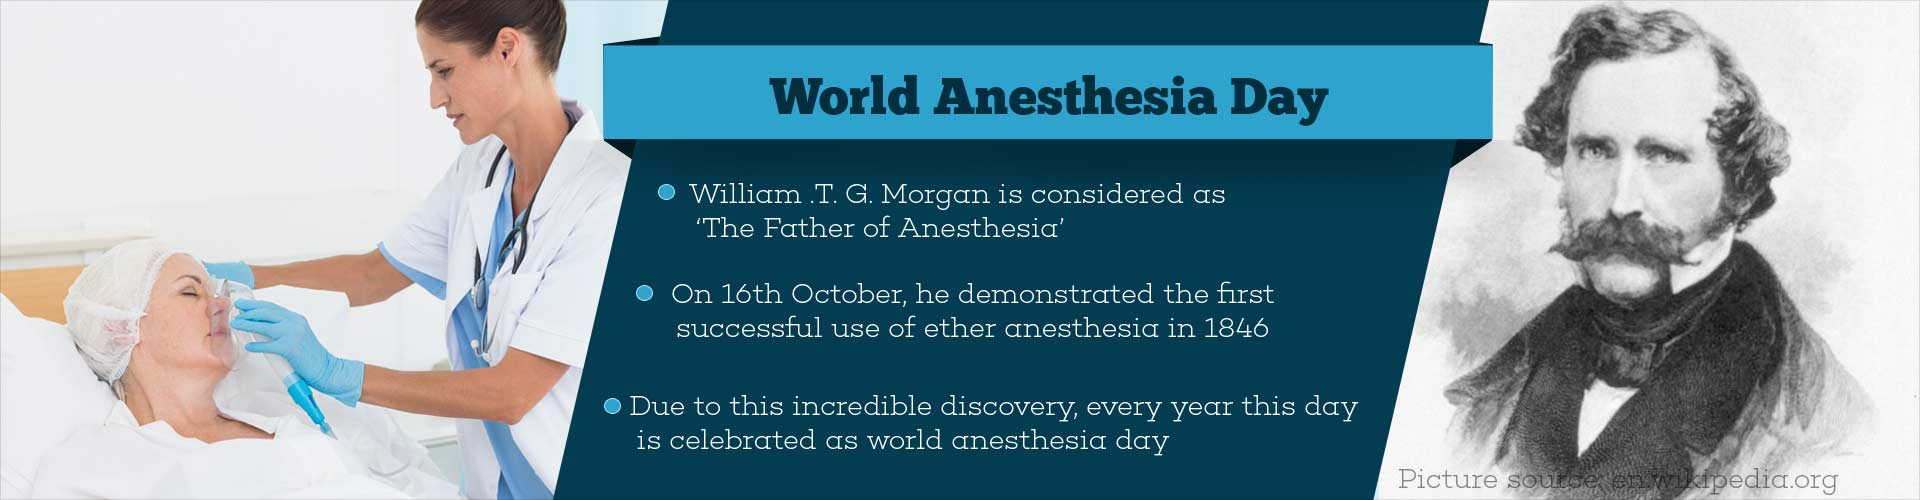 Celebrating Painless Surgery on World Anesthesia Day